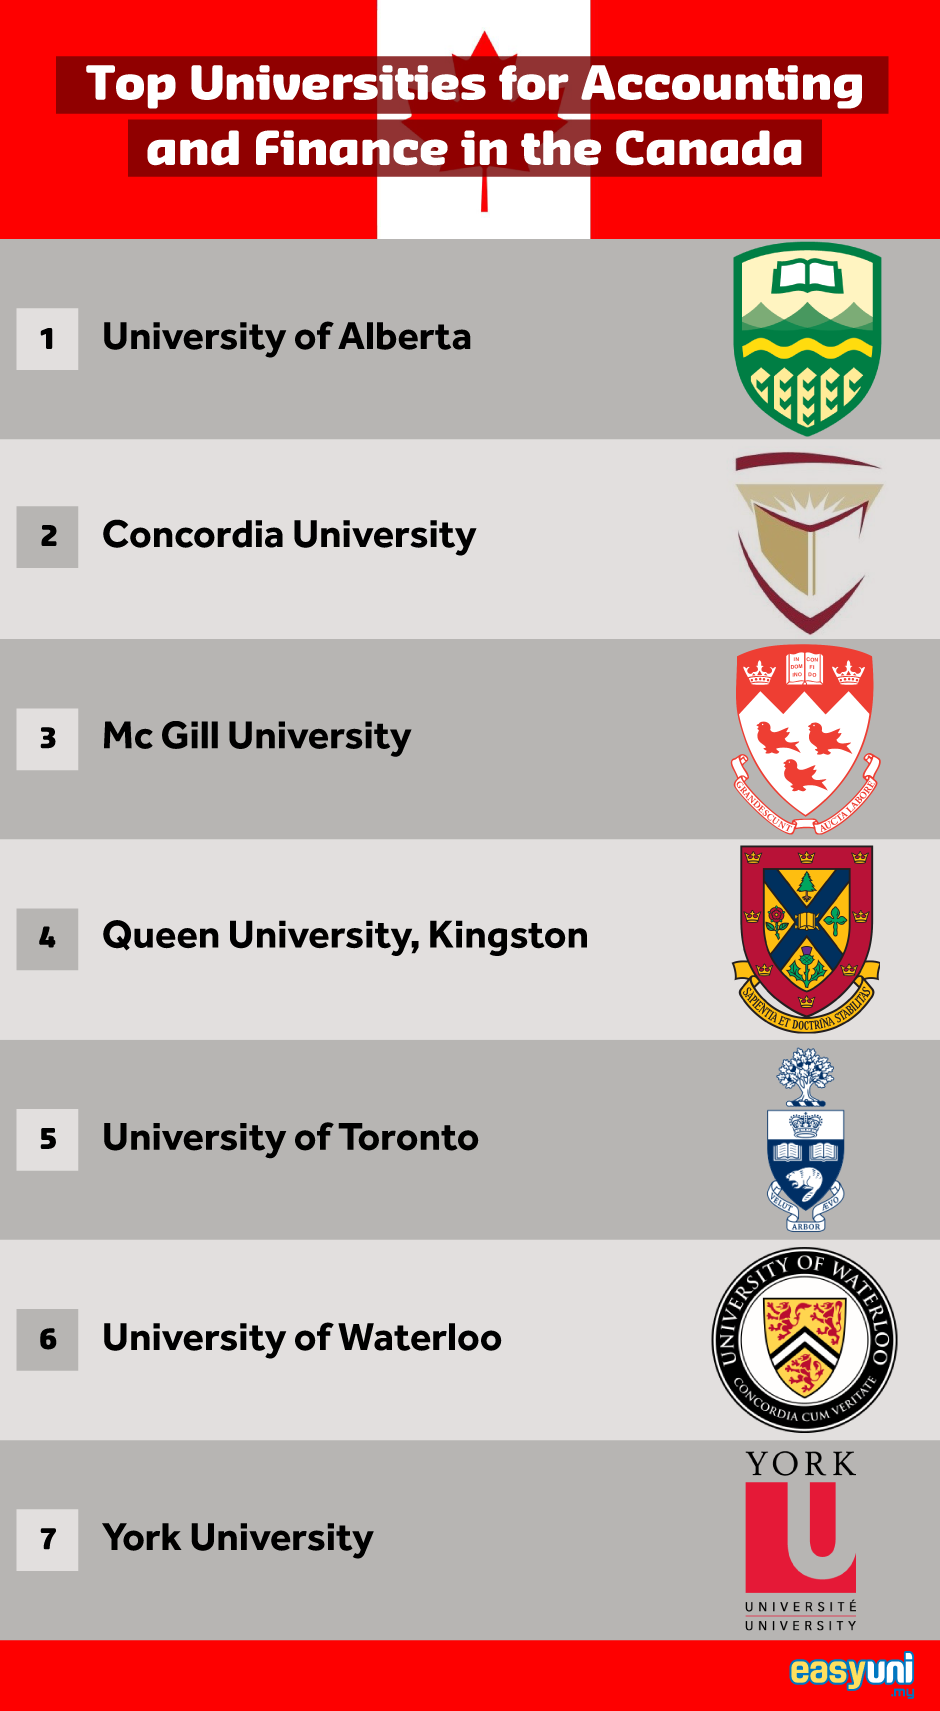 Top University for Accounting and Finance in Canada